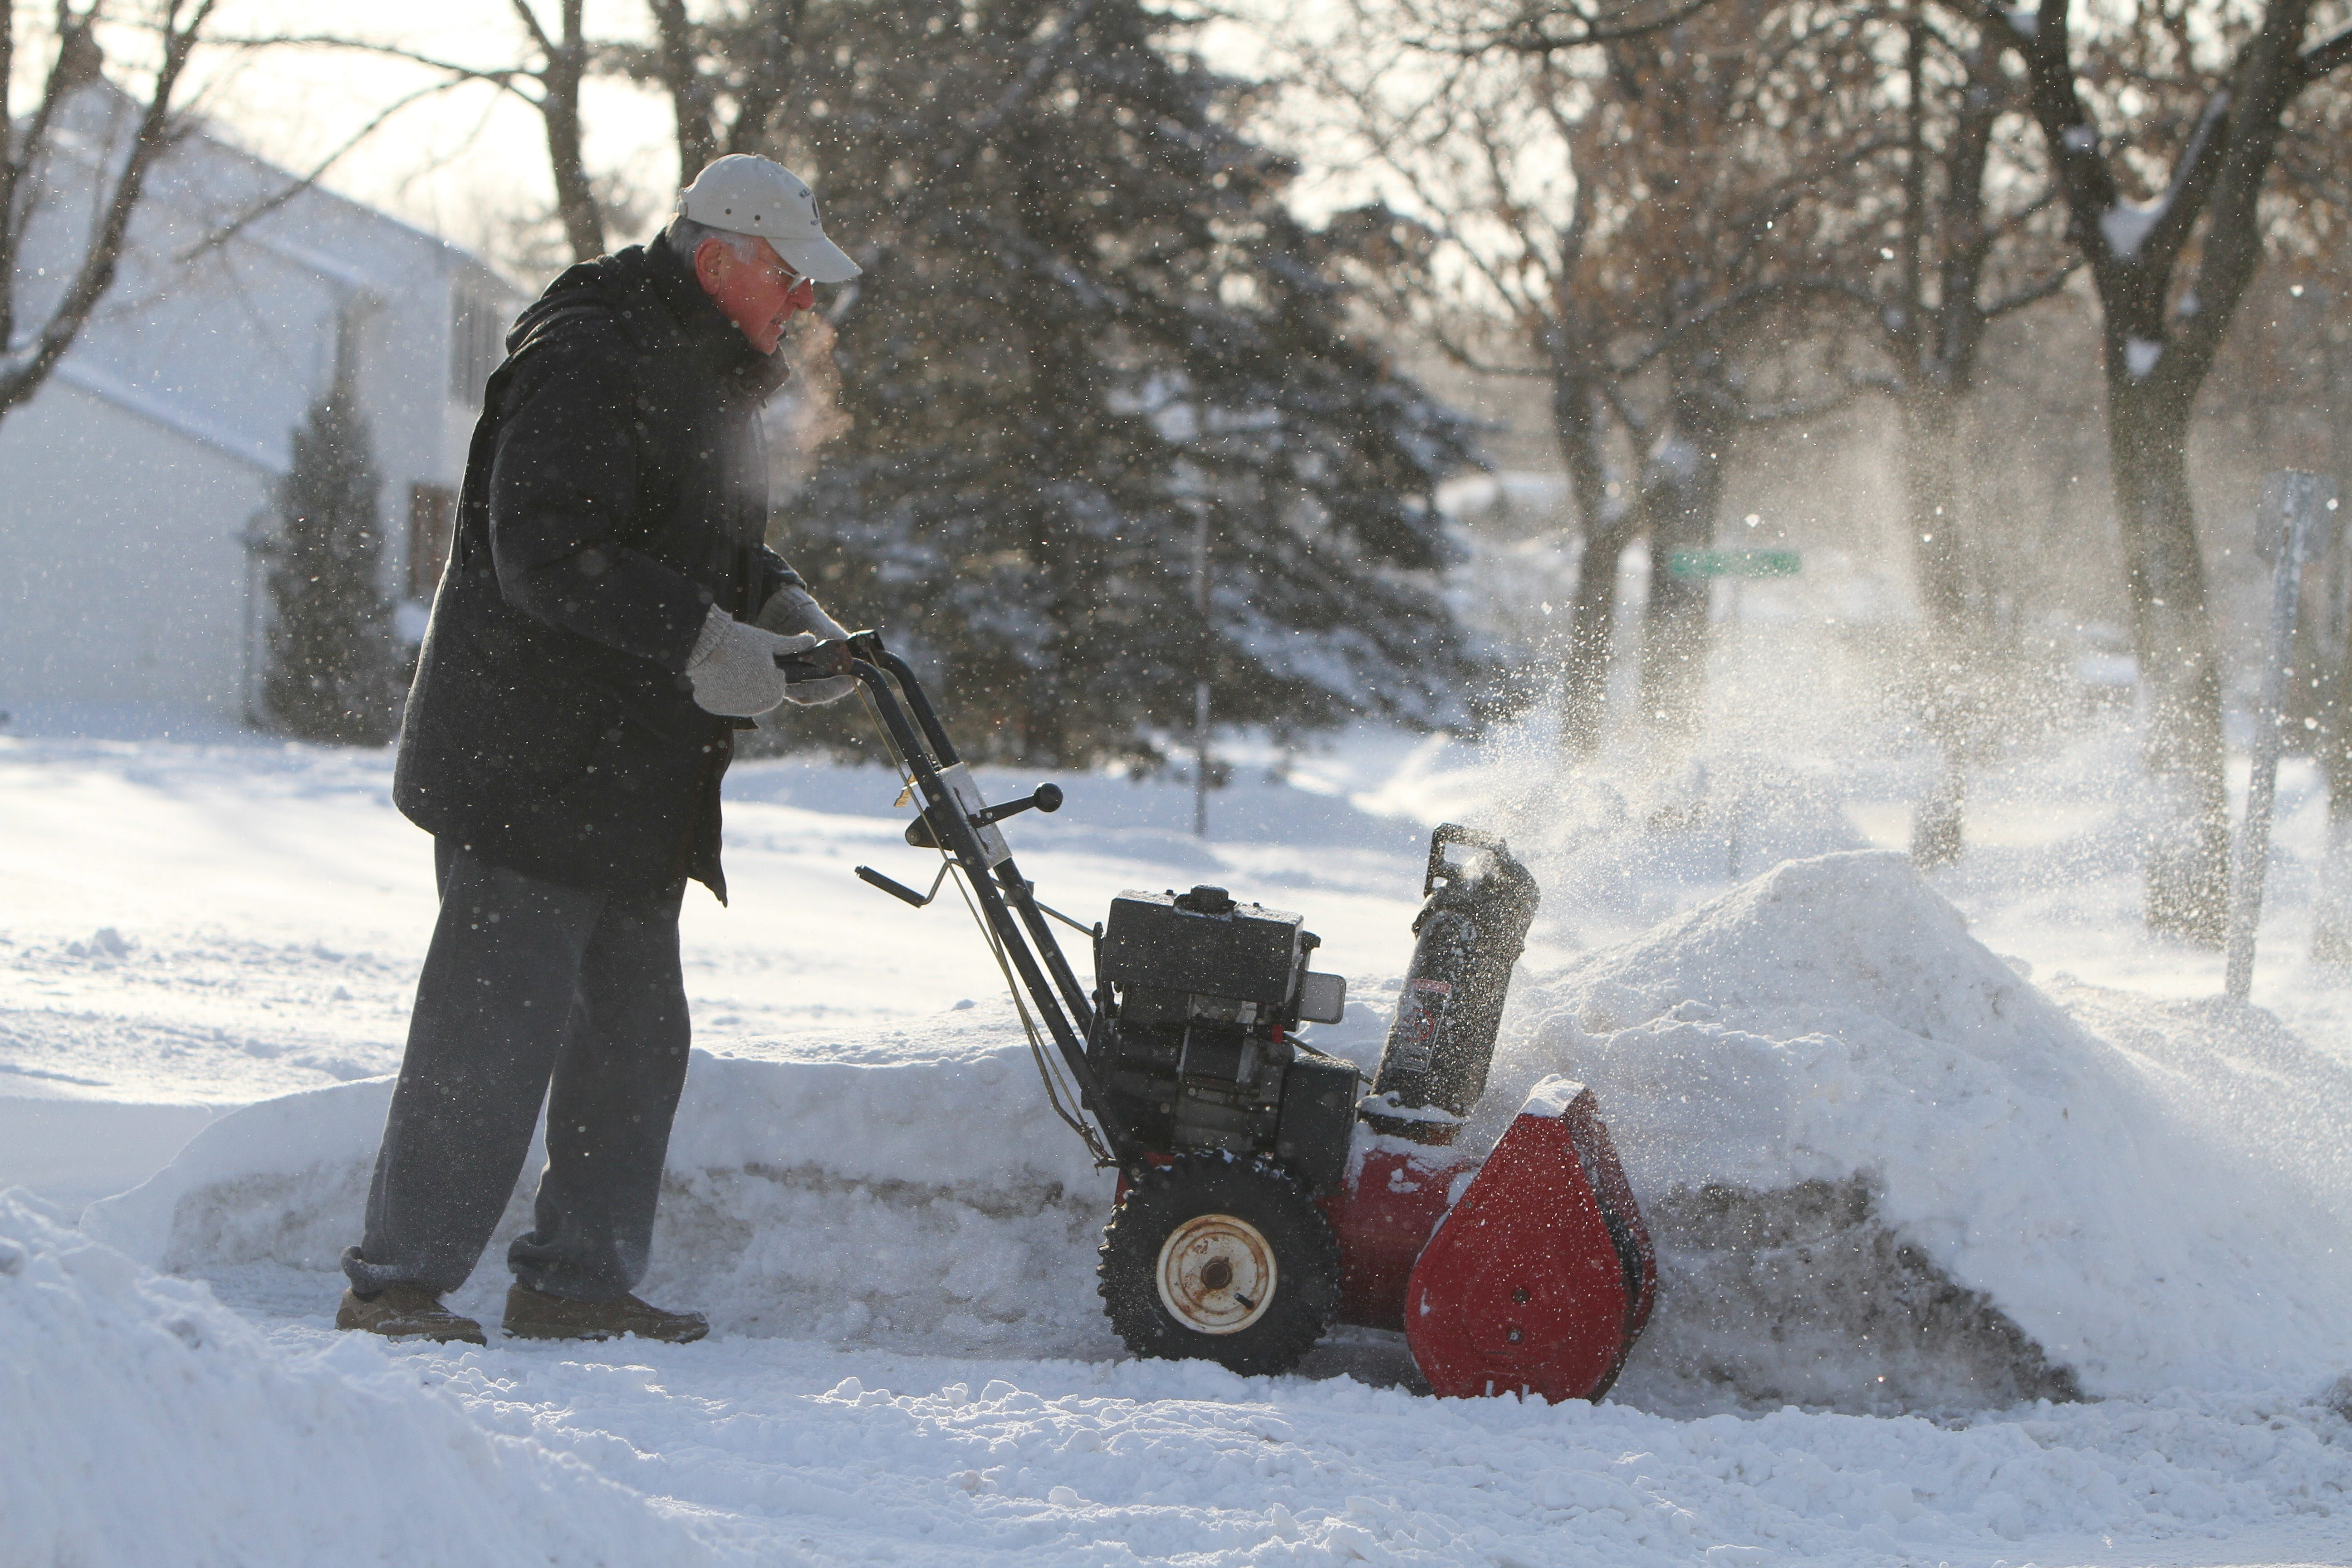 Bill Denhall clears his driveway in Williamsville today. Williamsville got 9.2 inches of snow over 48 hours.